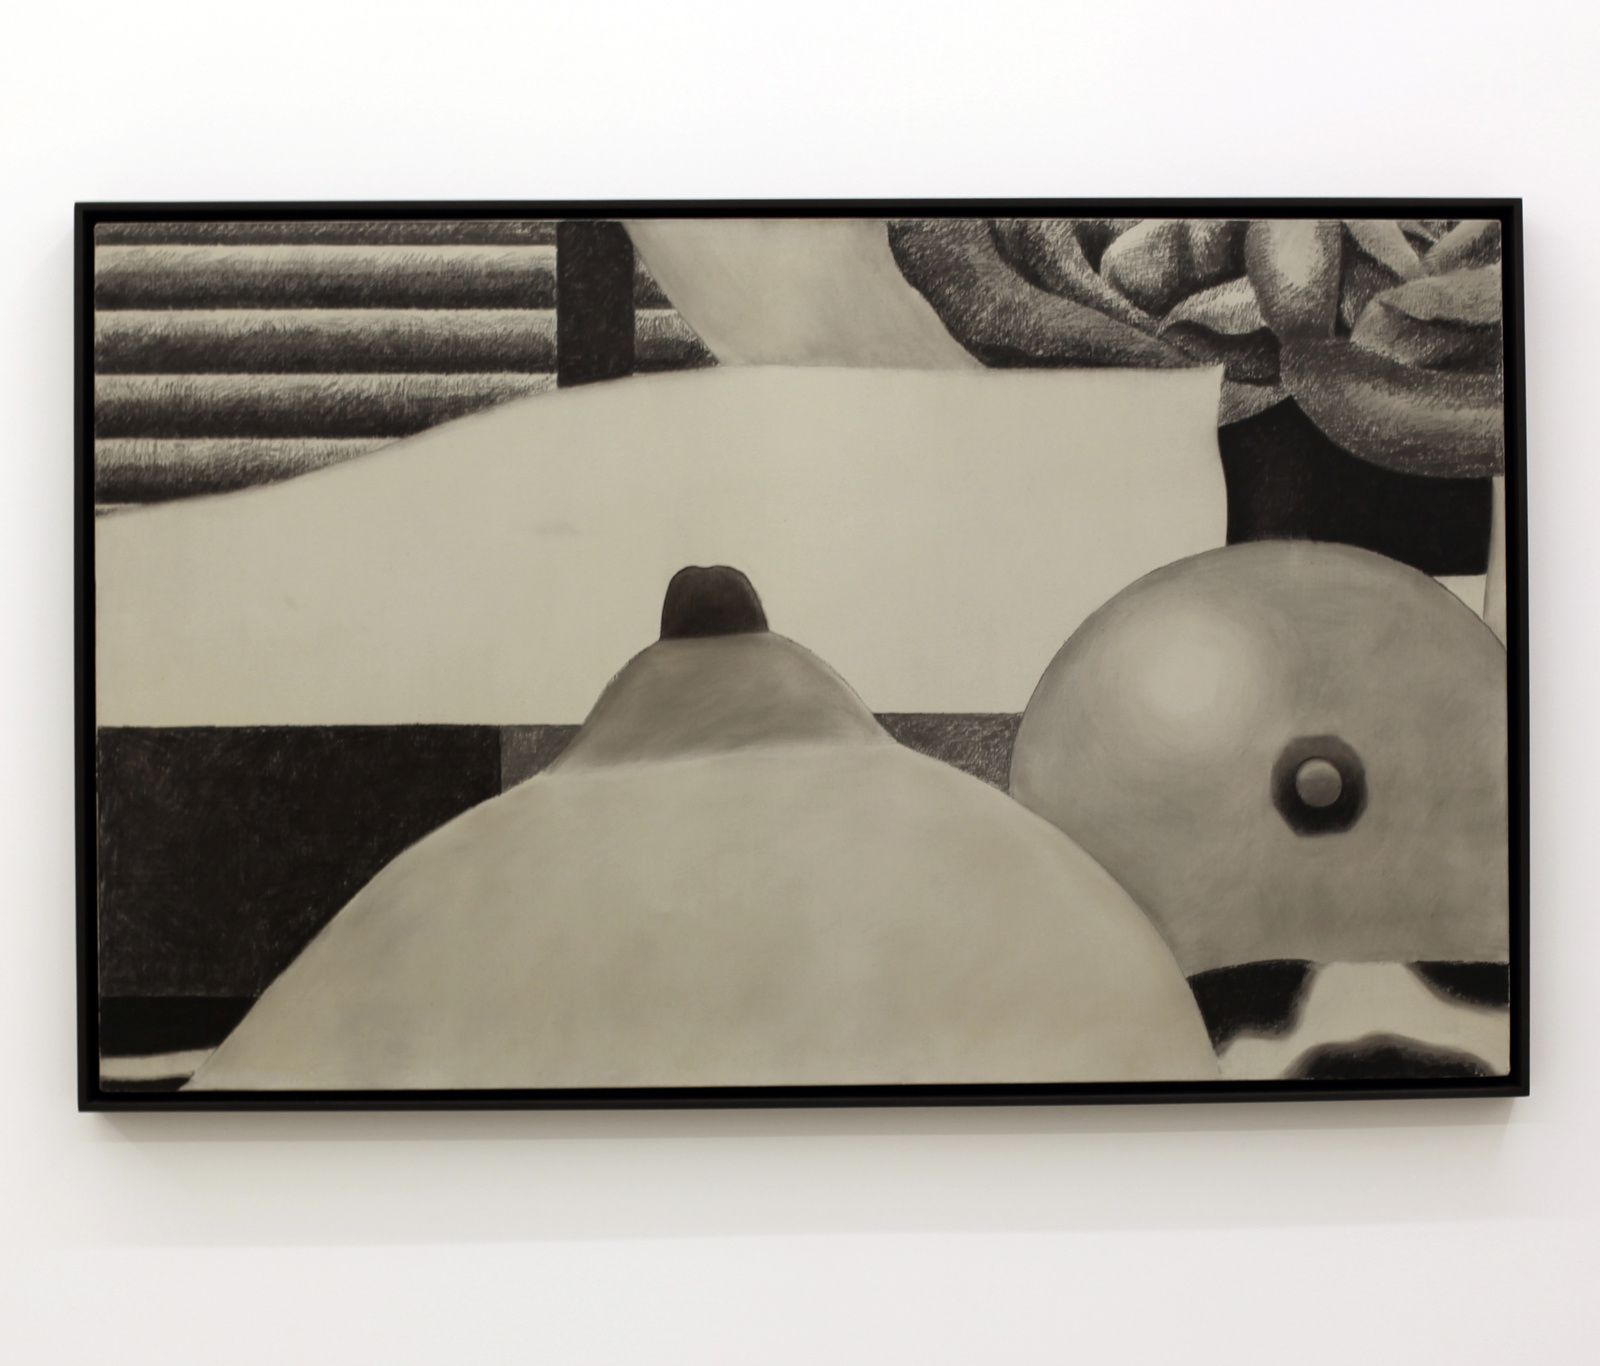 """""""Drawing for Bedroom Painting #6"""", 1969 de Tom Wesselmann - Courtesy Almine Rech Gallery © Photo Éric Simon"""